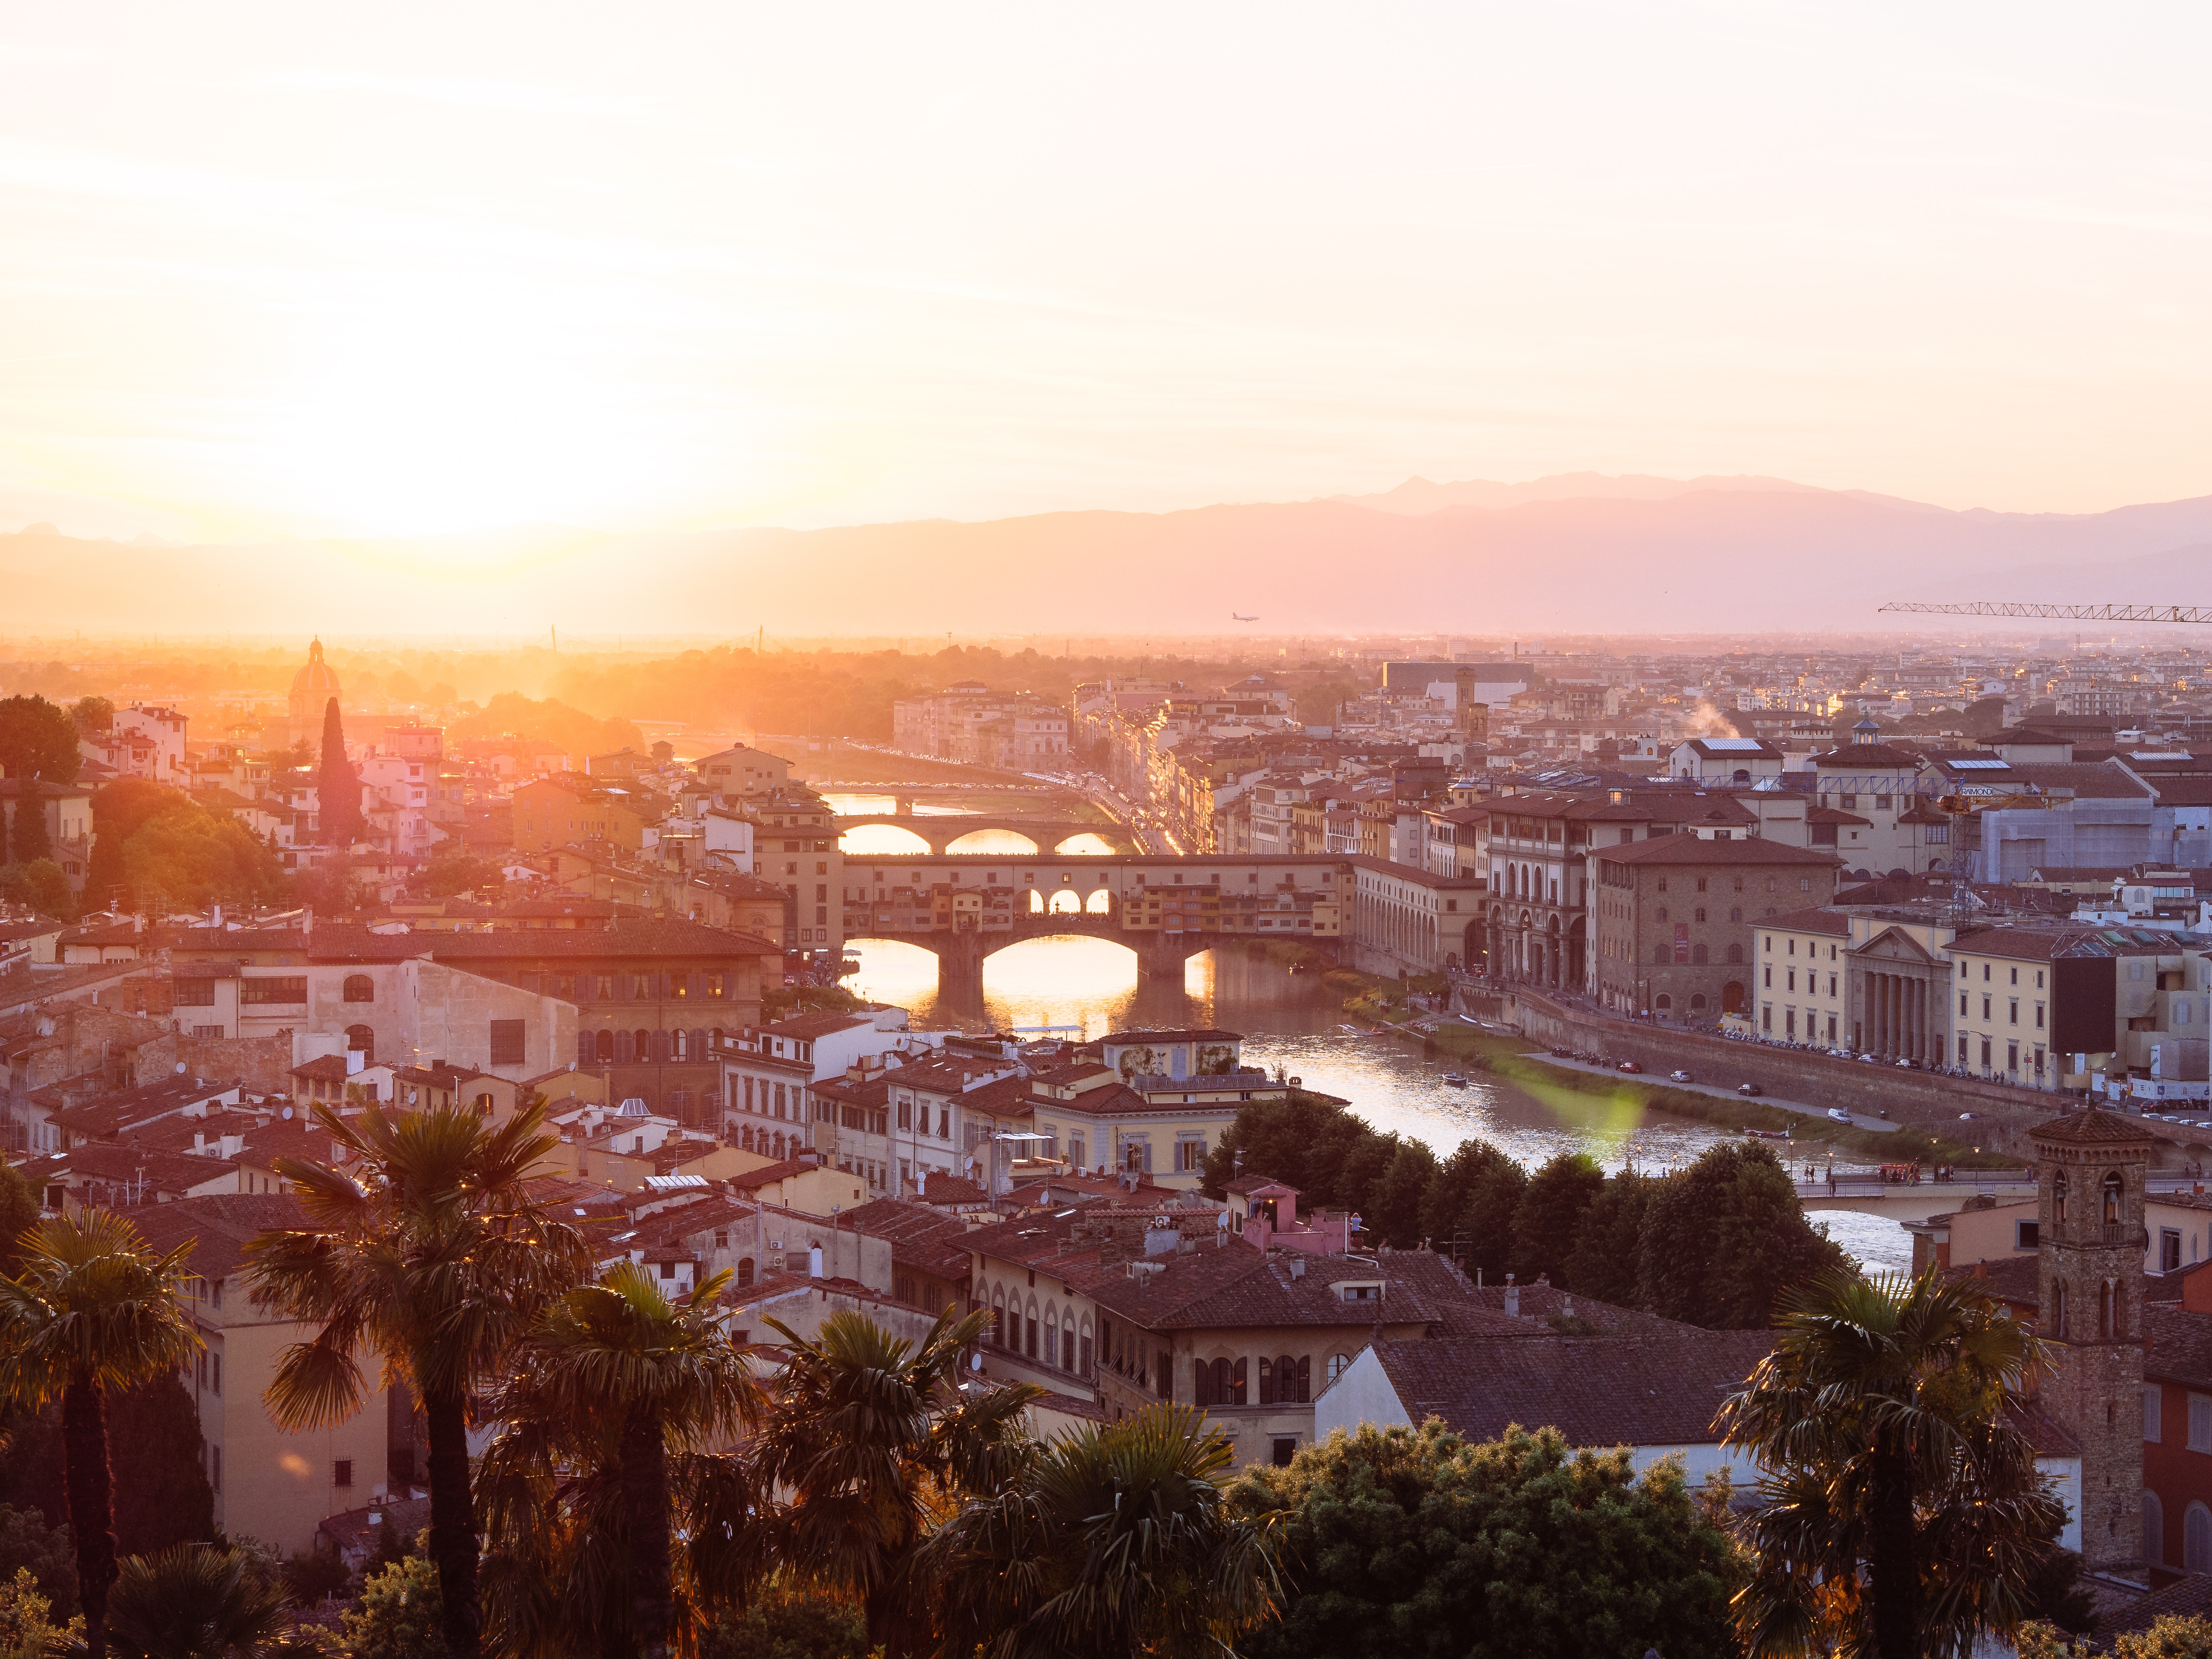 Florence from the rooftops at sunset